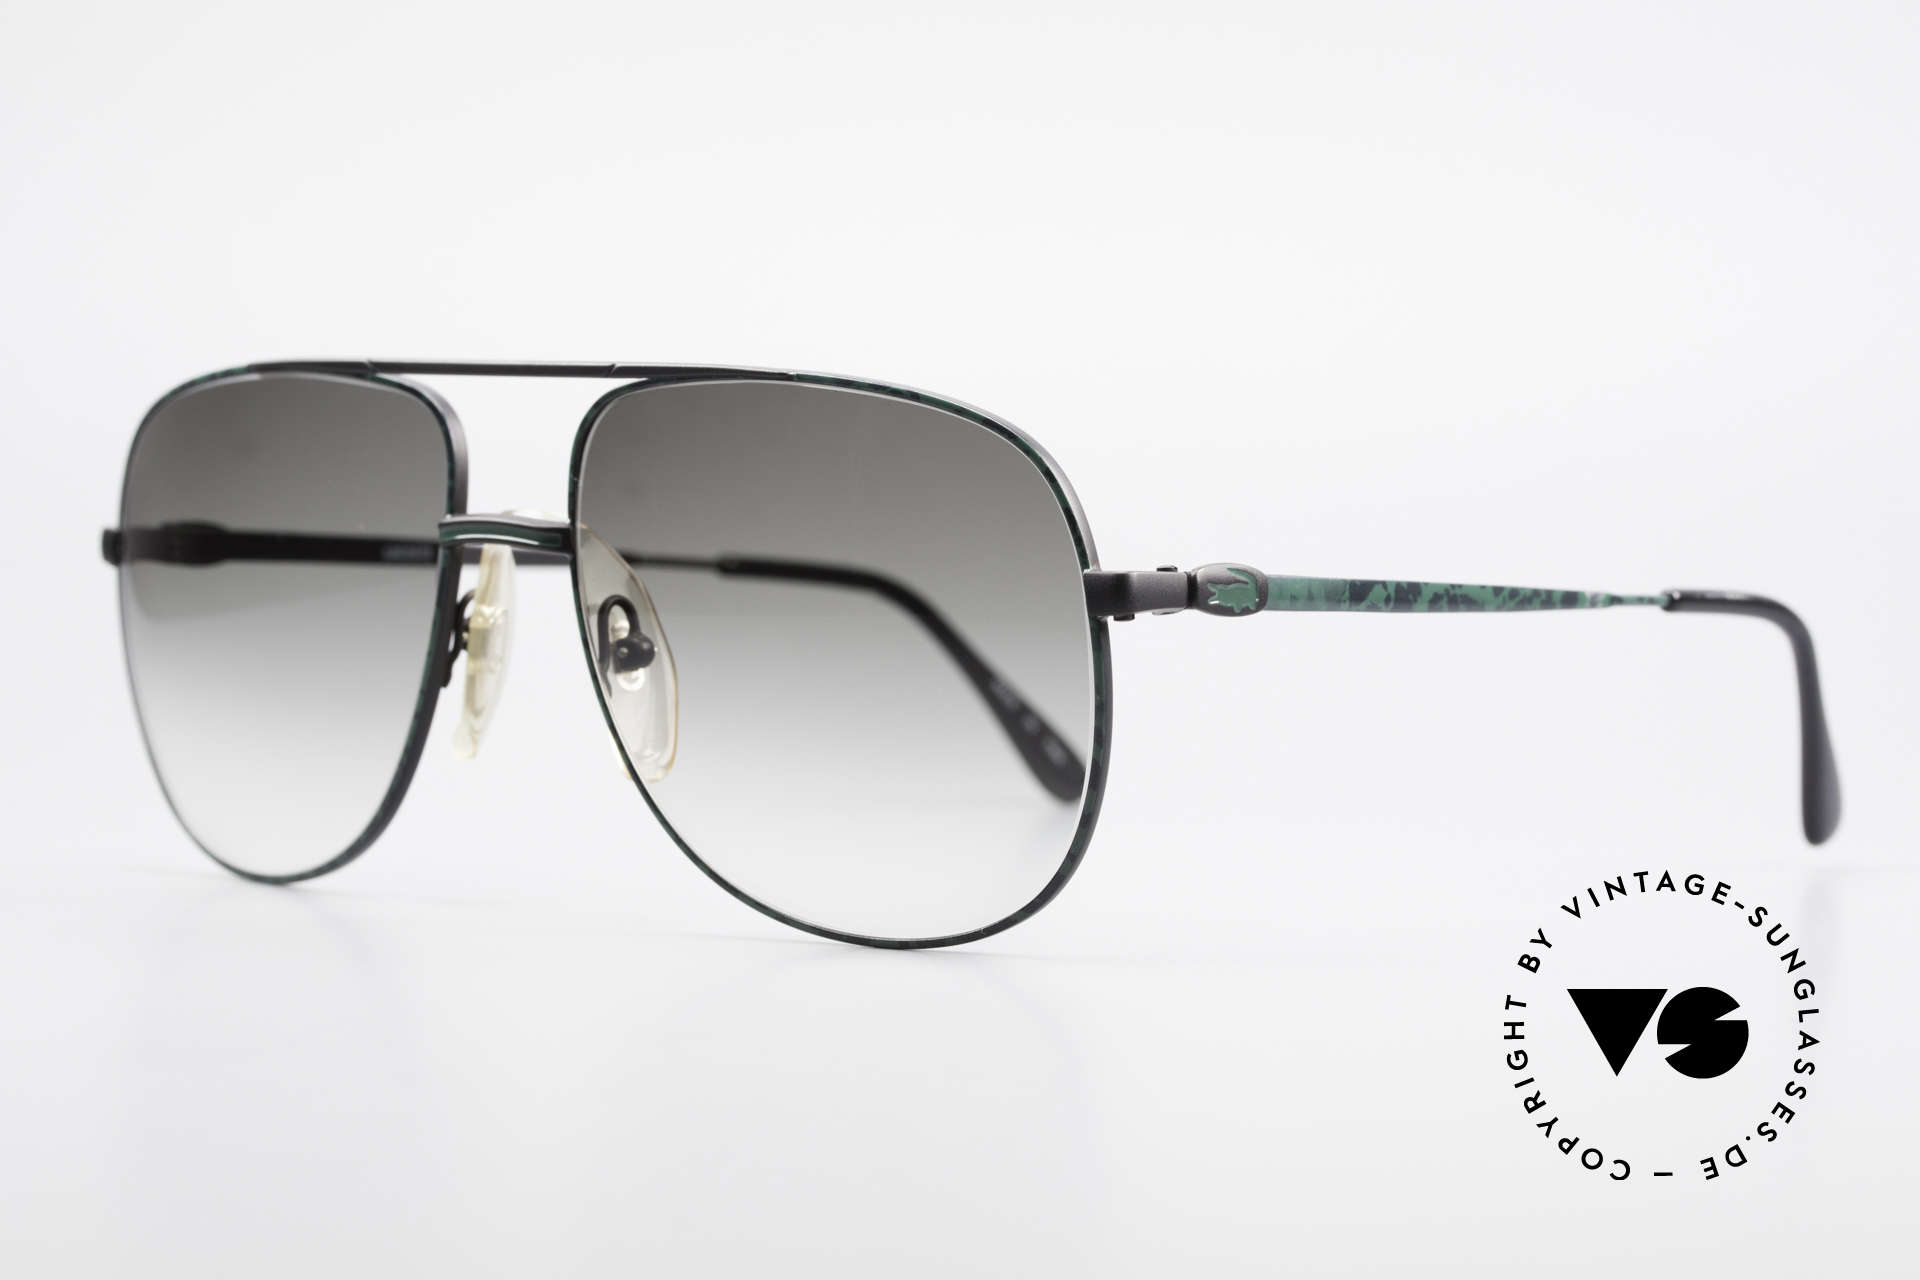 Lacoste 101 Sporty Aviator Sunglasses XL, this pair comes from the 80's with a terrific frame finish, Made for Men